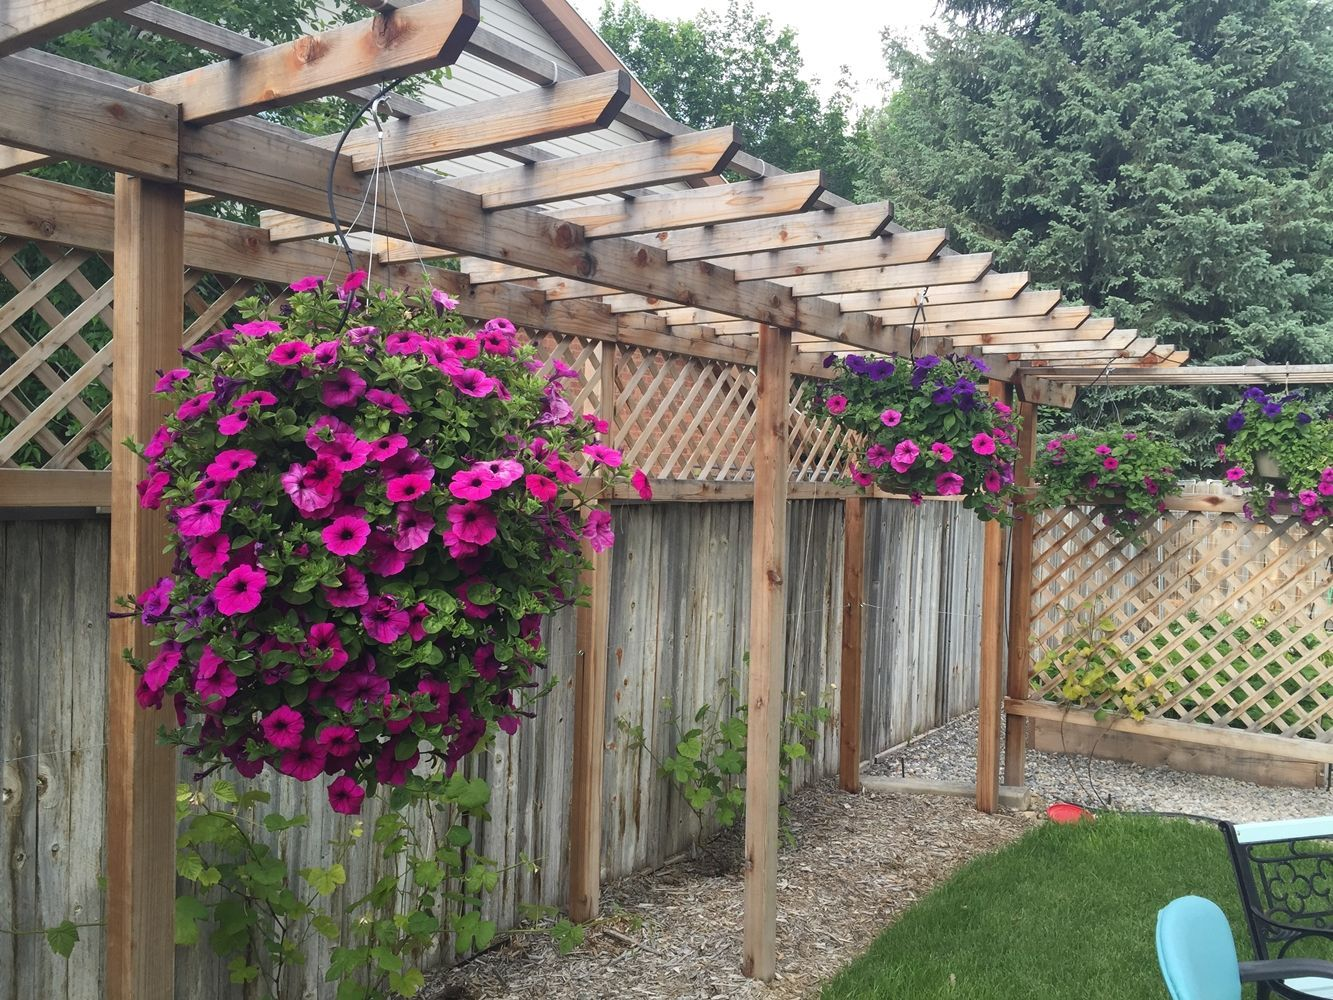 DIY Early Start Flowers for Flower Boxes Hanging baskets